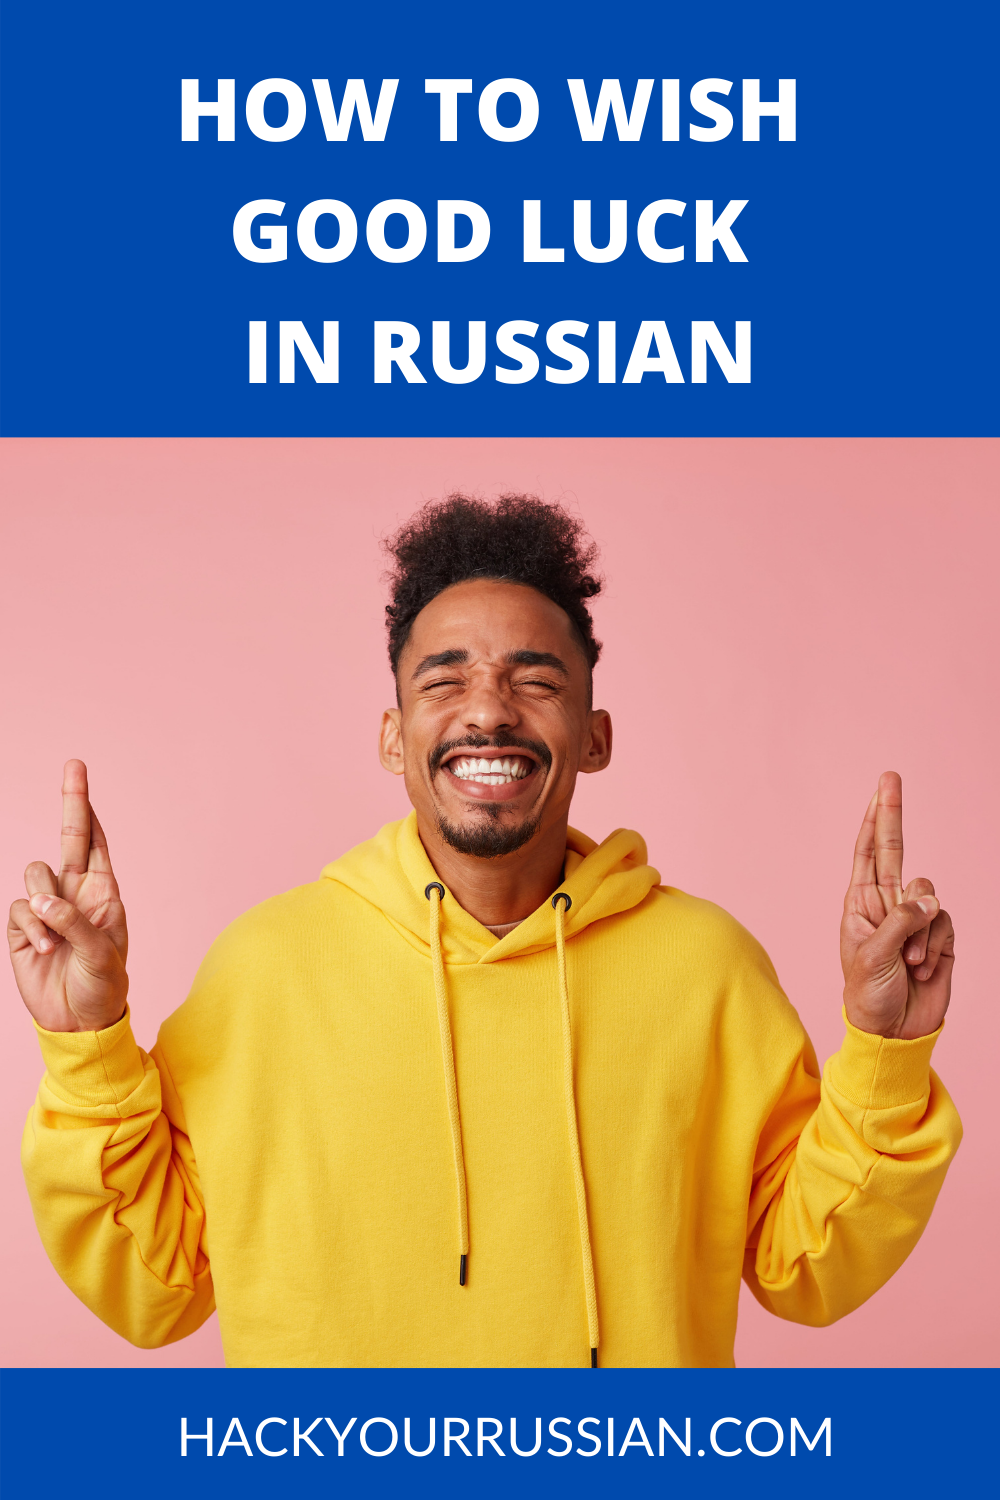 Wish good luck in Russian phrases